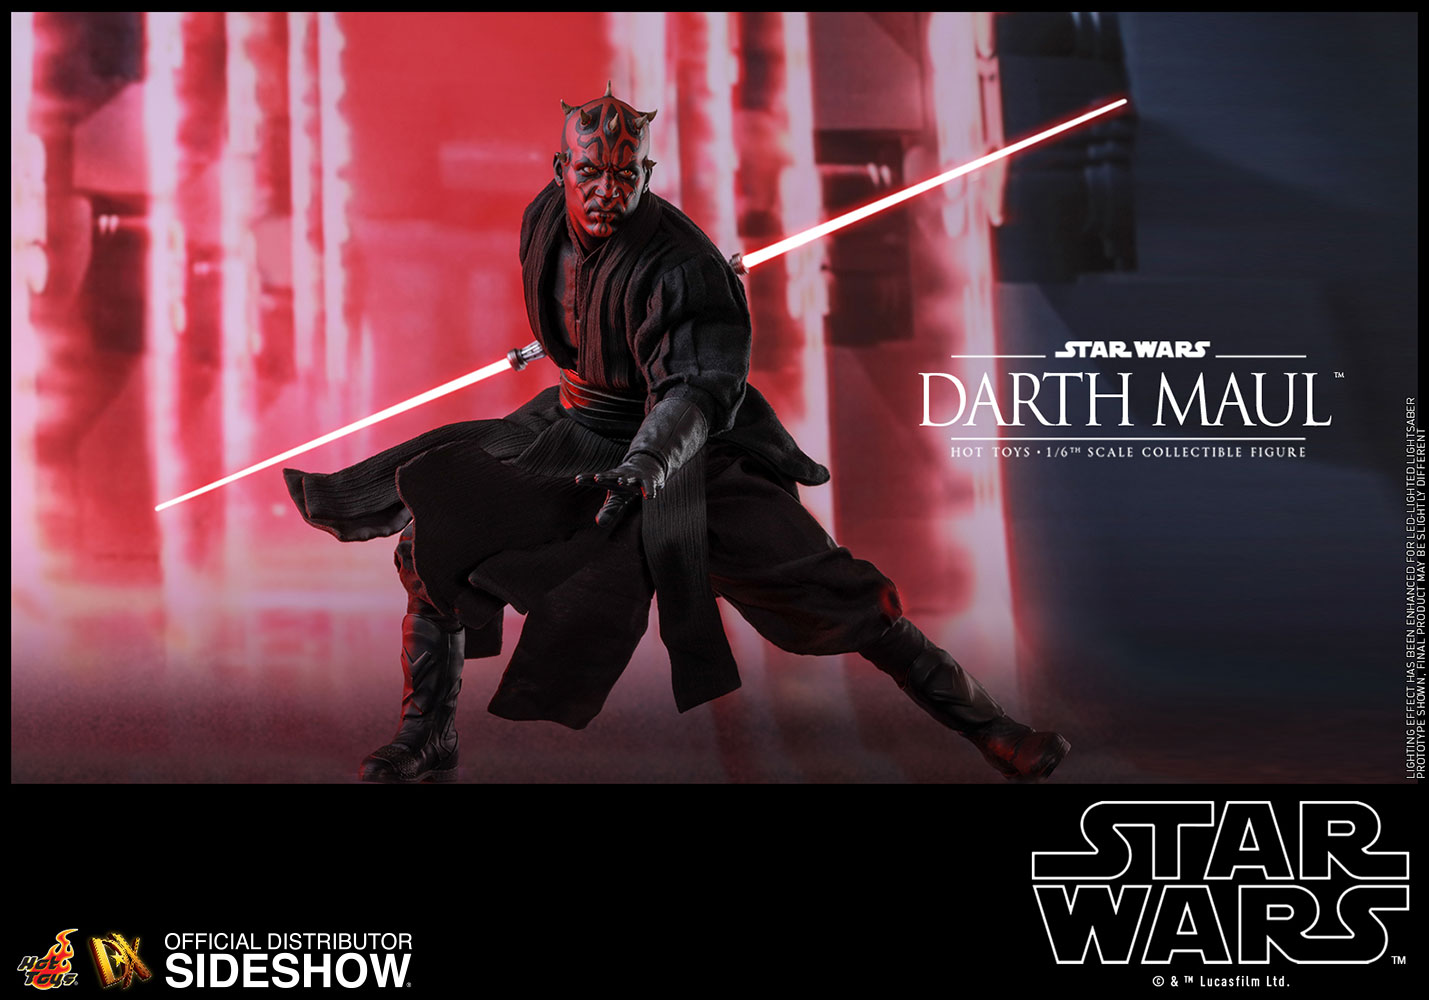 star wars darth maul special edition sixth scale figure by h